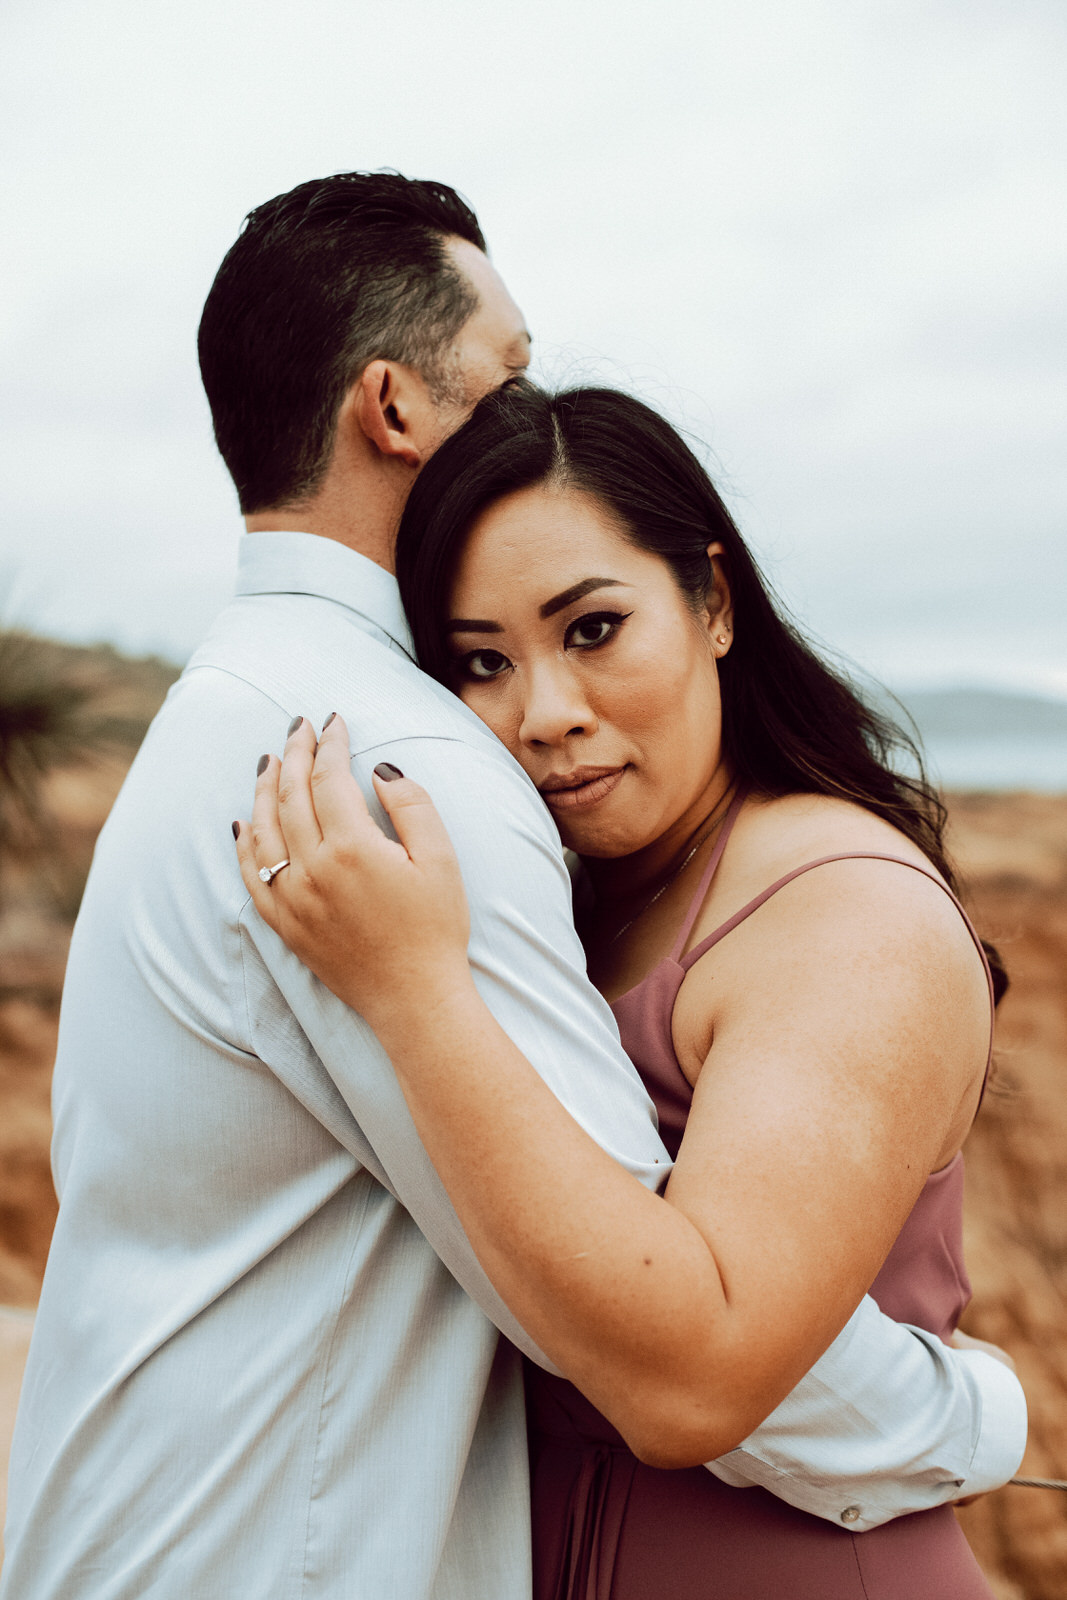 A man and woman embracing each other as she looks directly at the camera